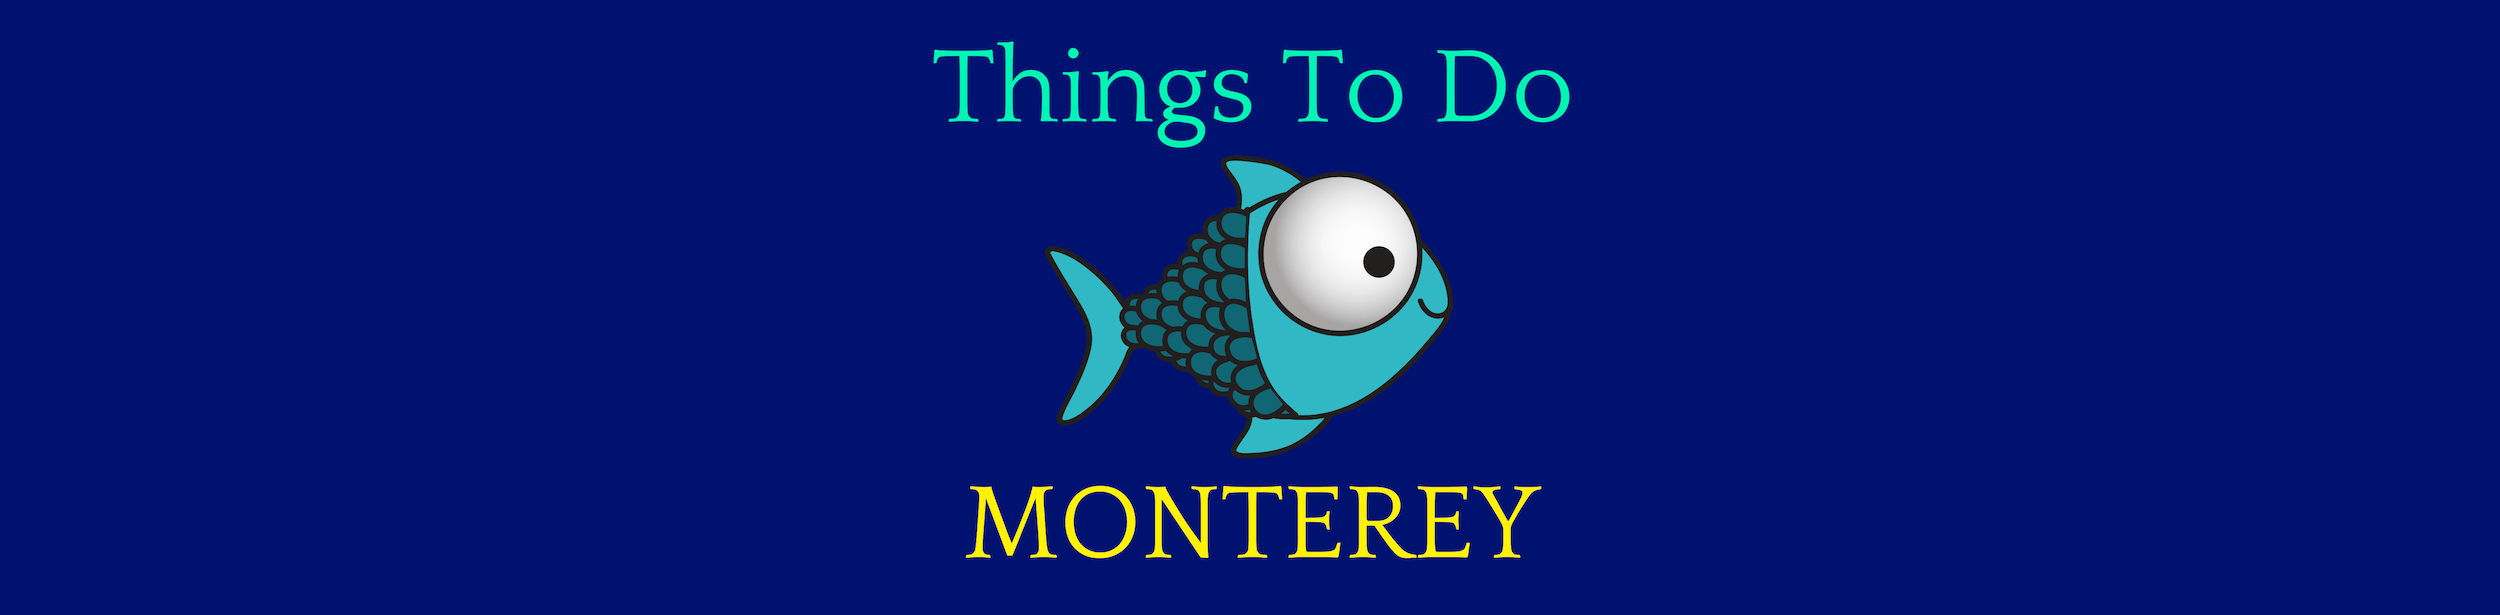 Things to Do Monterey